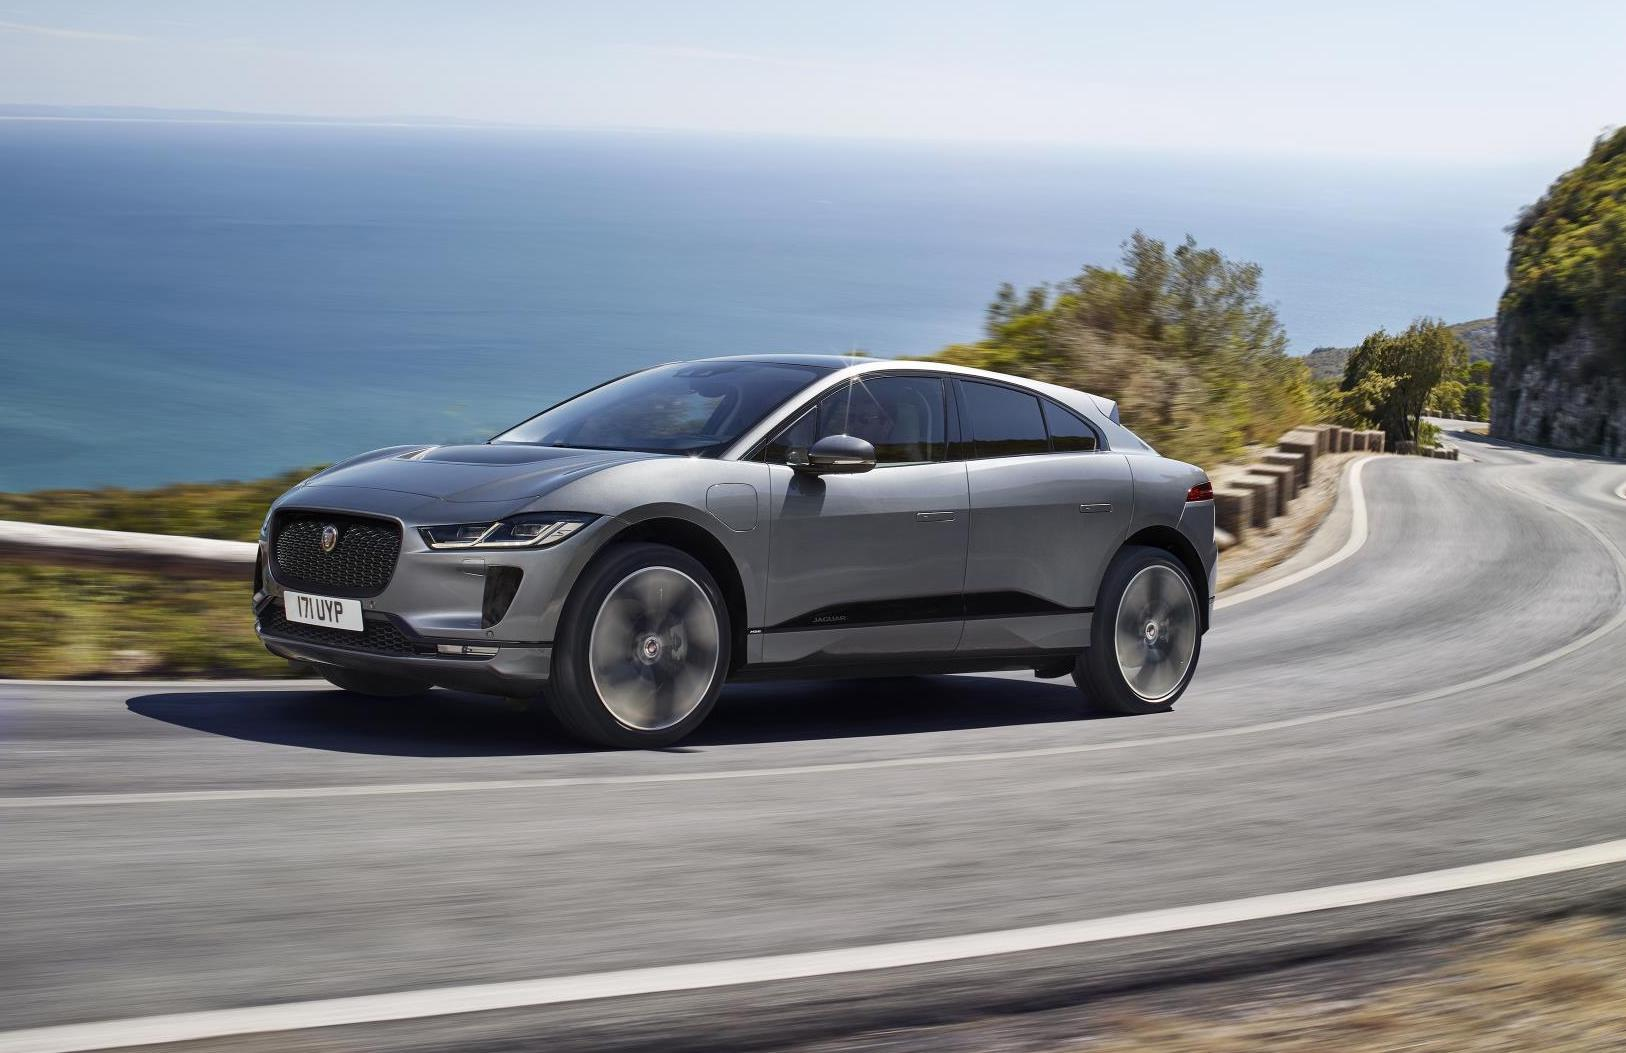 F Pace For Sale >> Electric Jaguar I-Pace officially revealed, on sale from $119,000 | PerformanceDrive